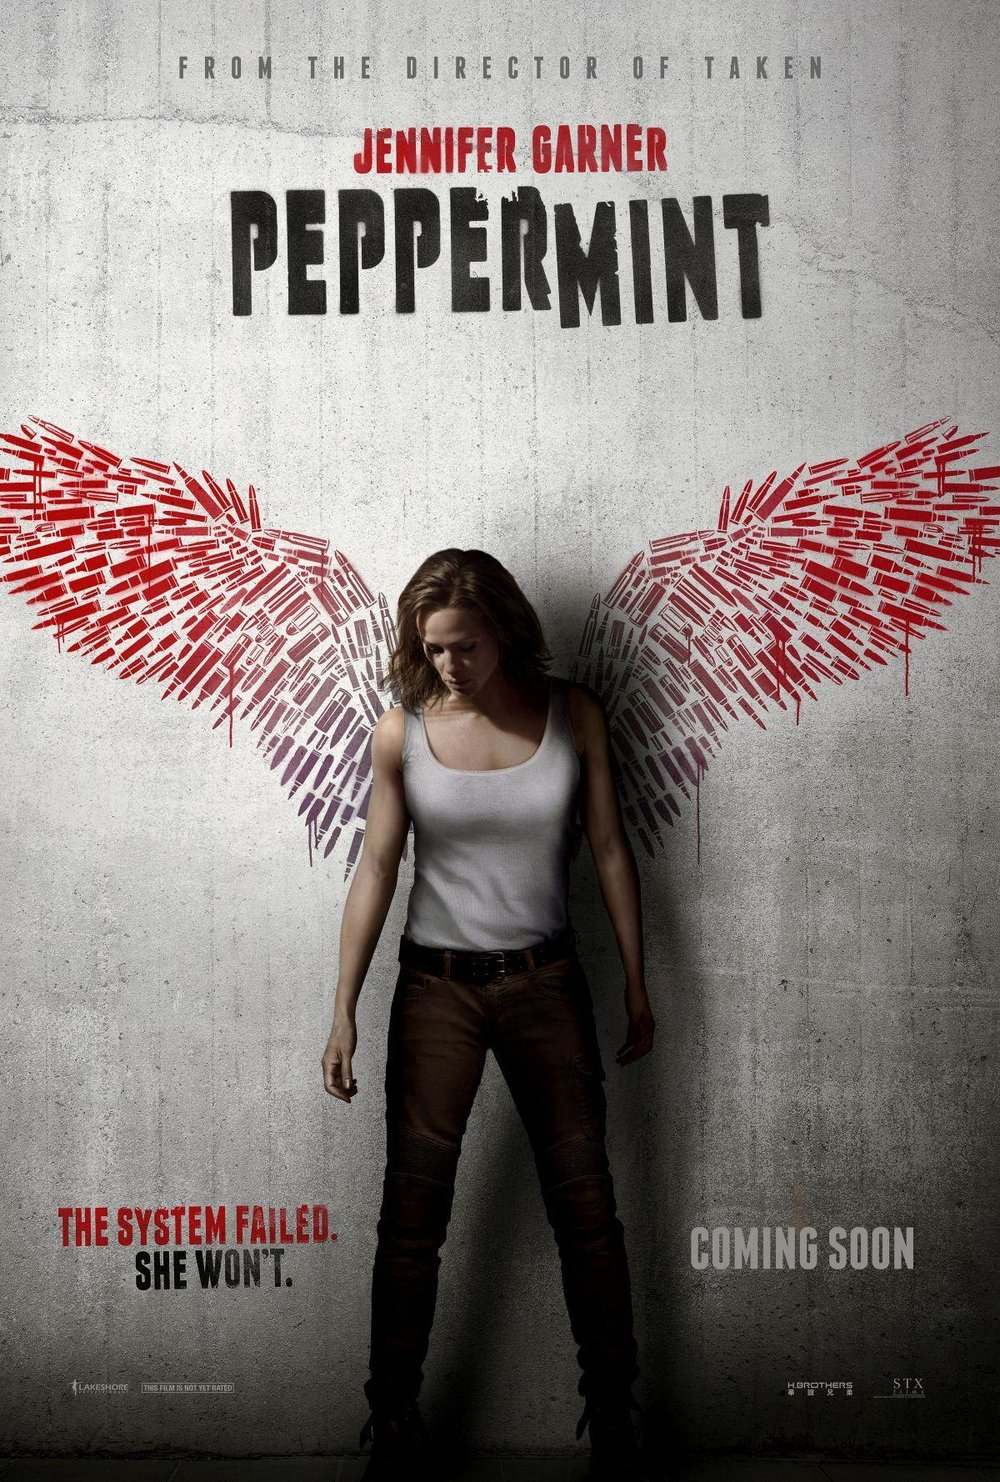 jennifer-garner-kicks-ass-in-the-new-trailer-for-her-action-film-peppermint1